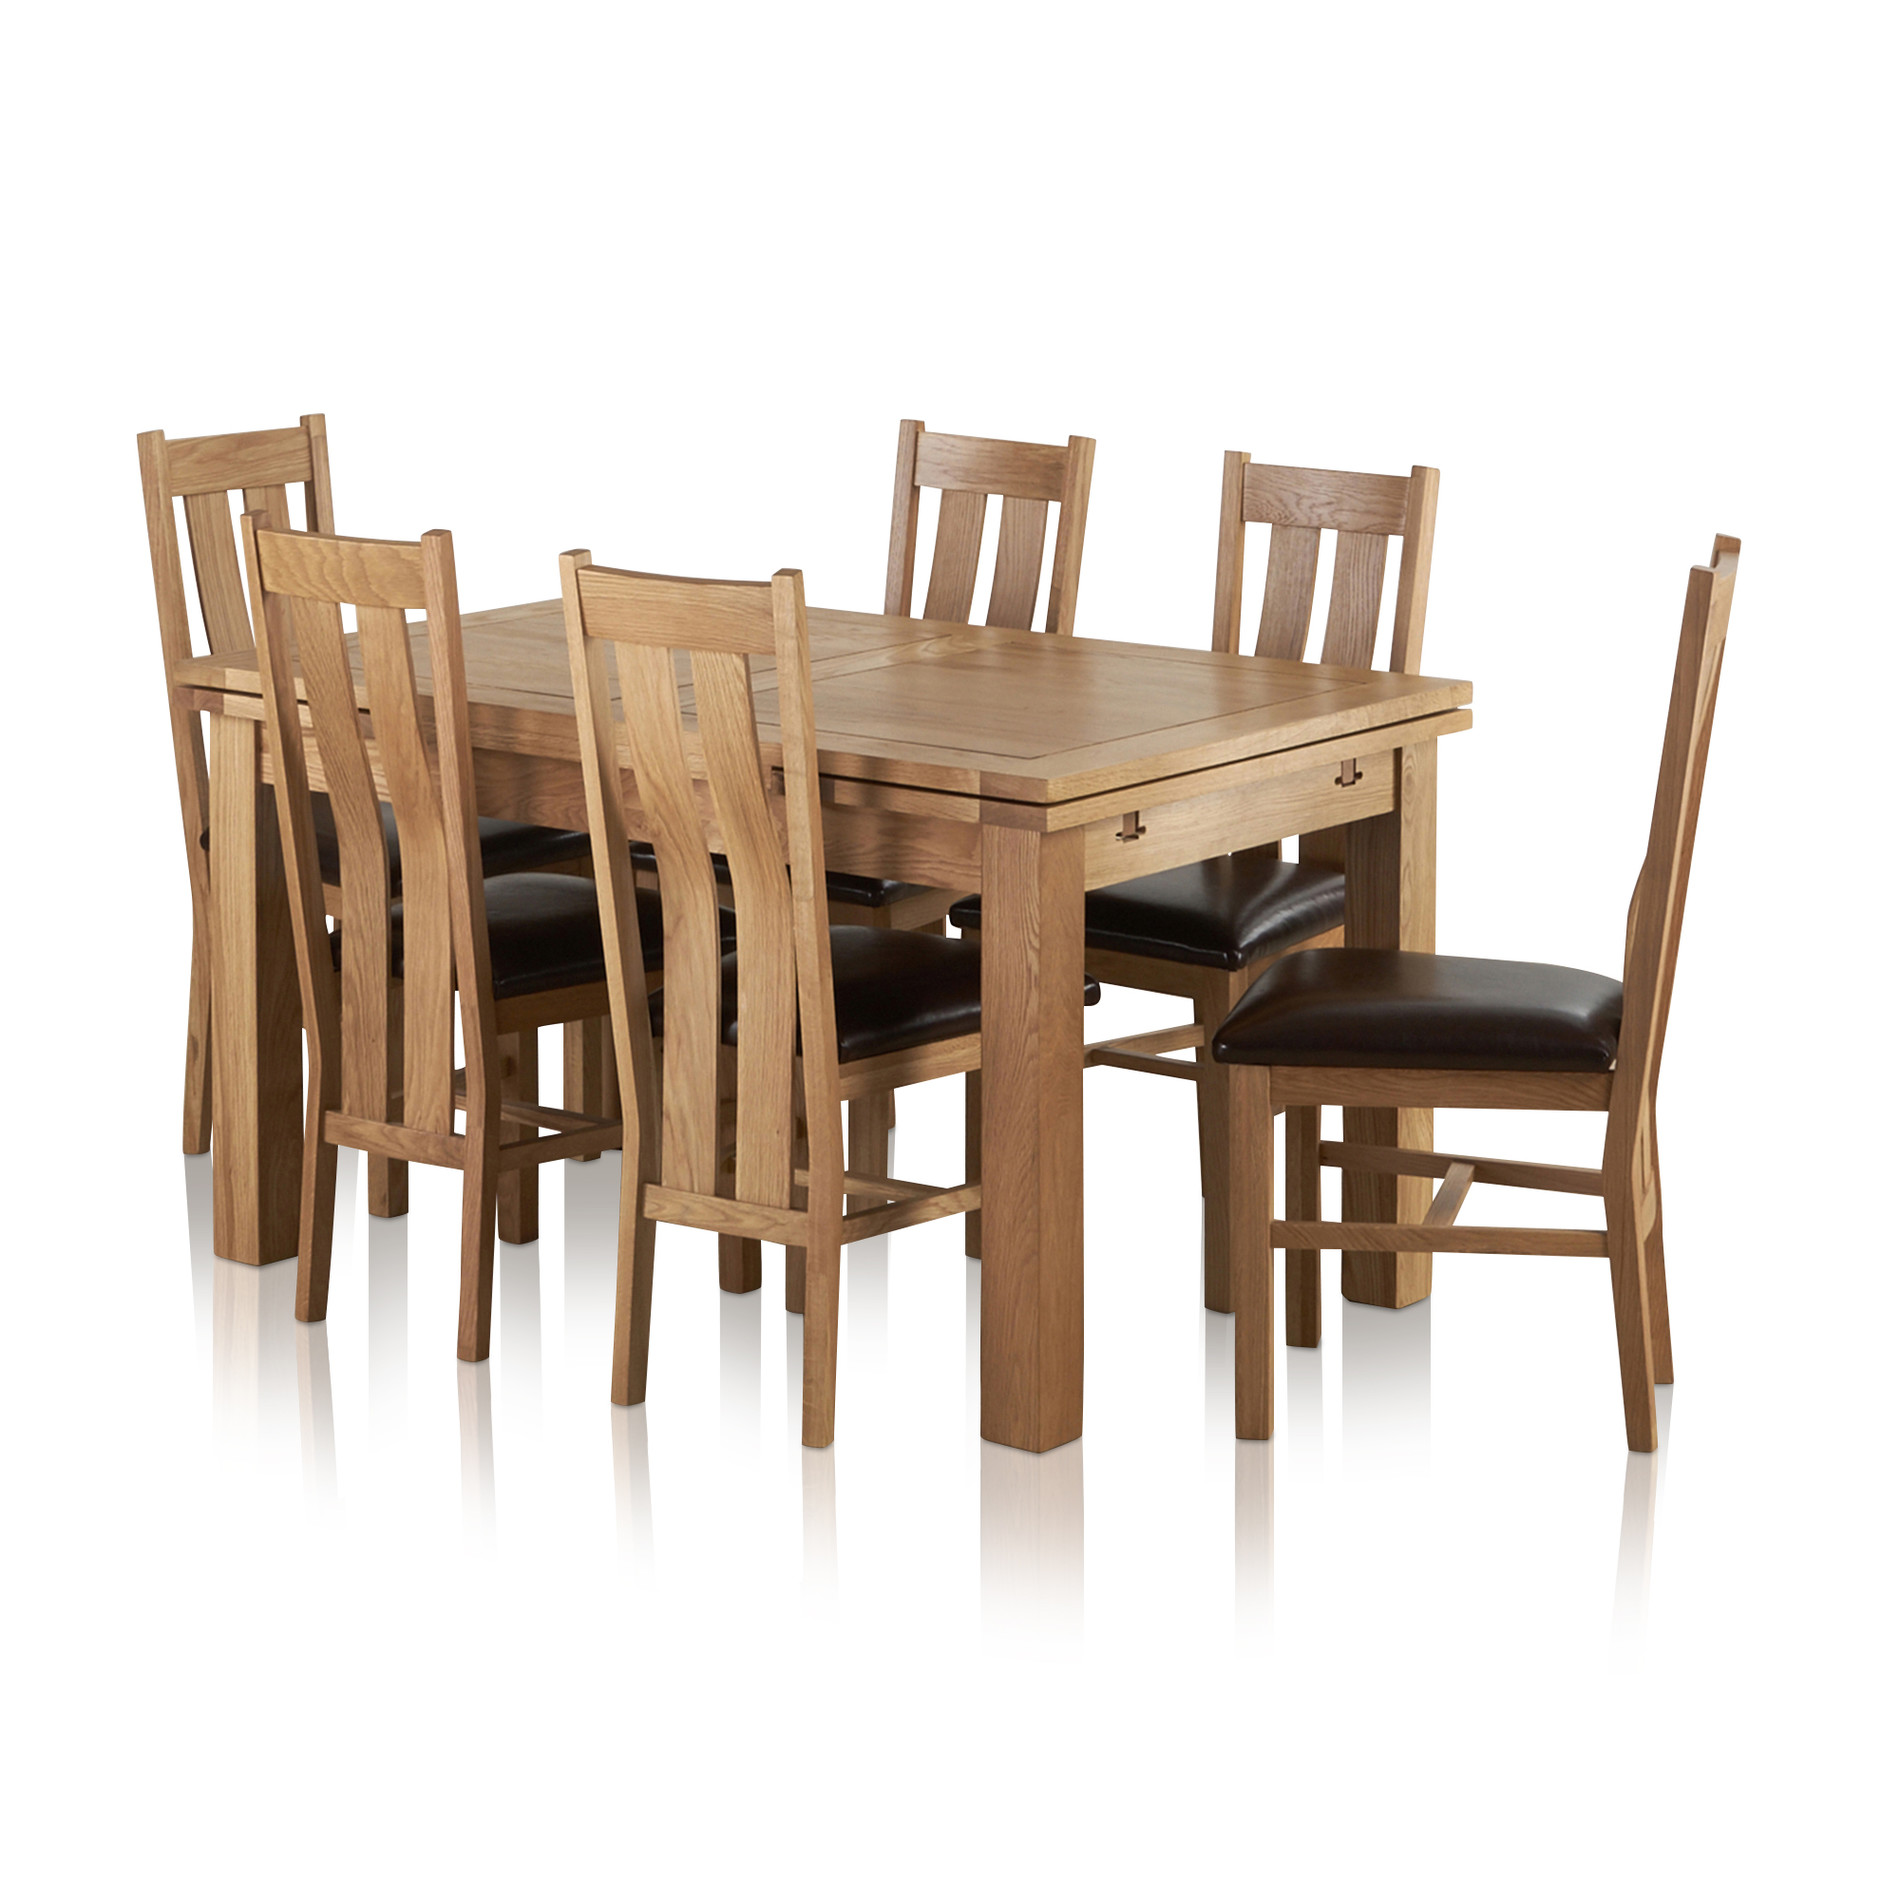 Dorset Dining Set In Oak Extending Table 6 Leather Chairs